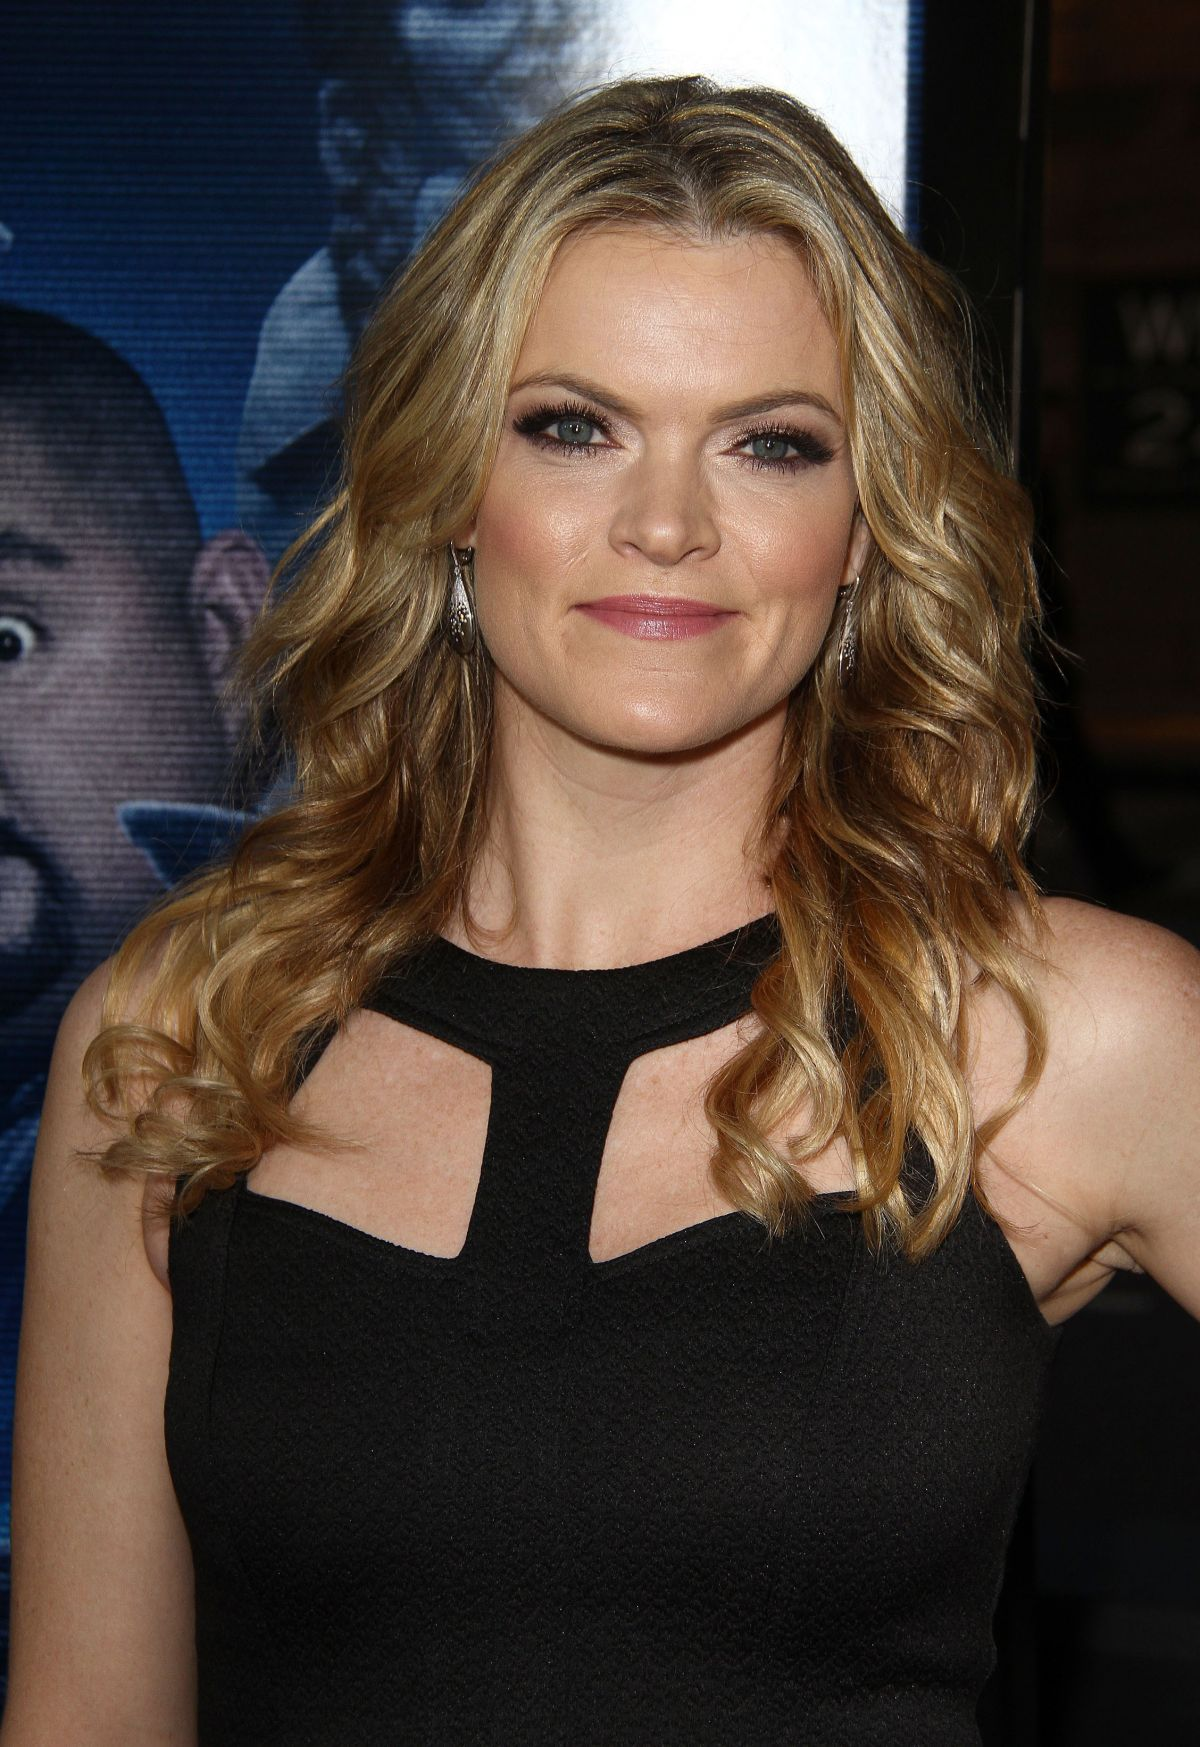 MISSI PYLE at A Haunted House 2 Premiere in Los Angeles